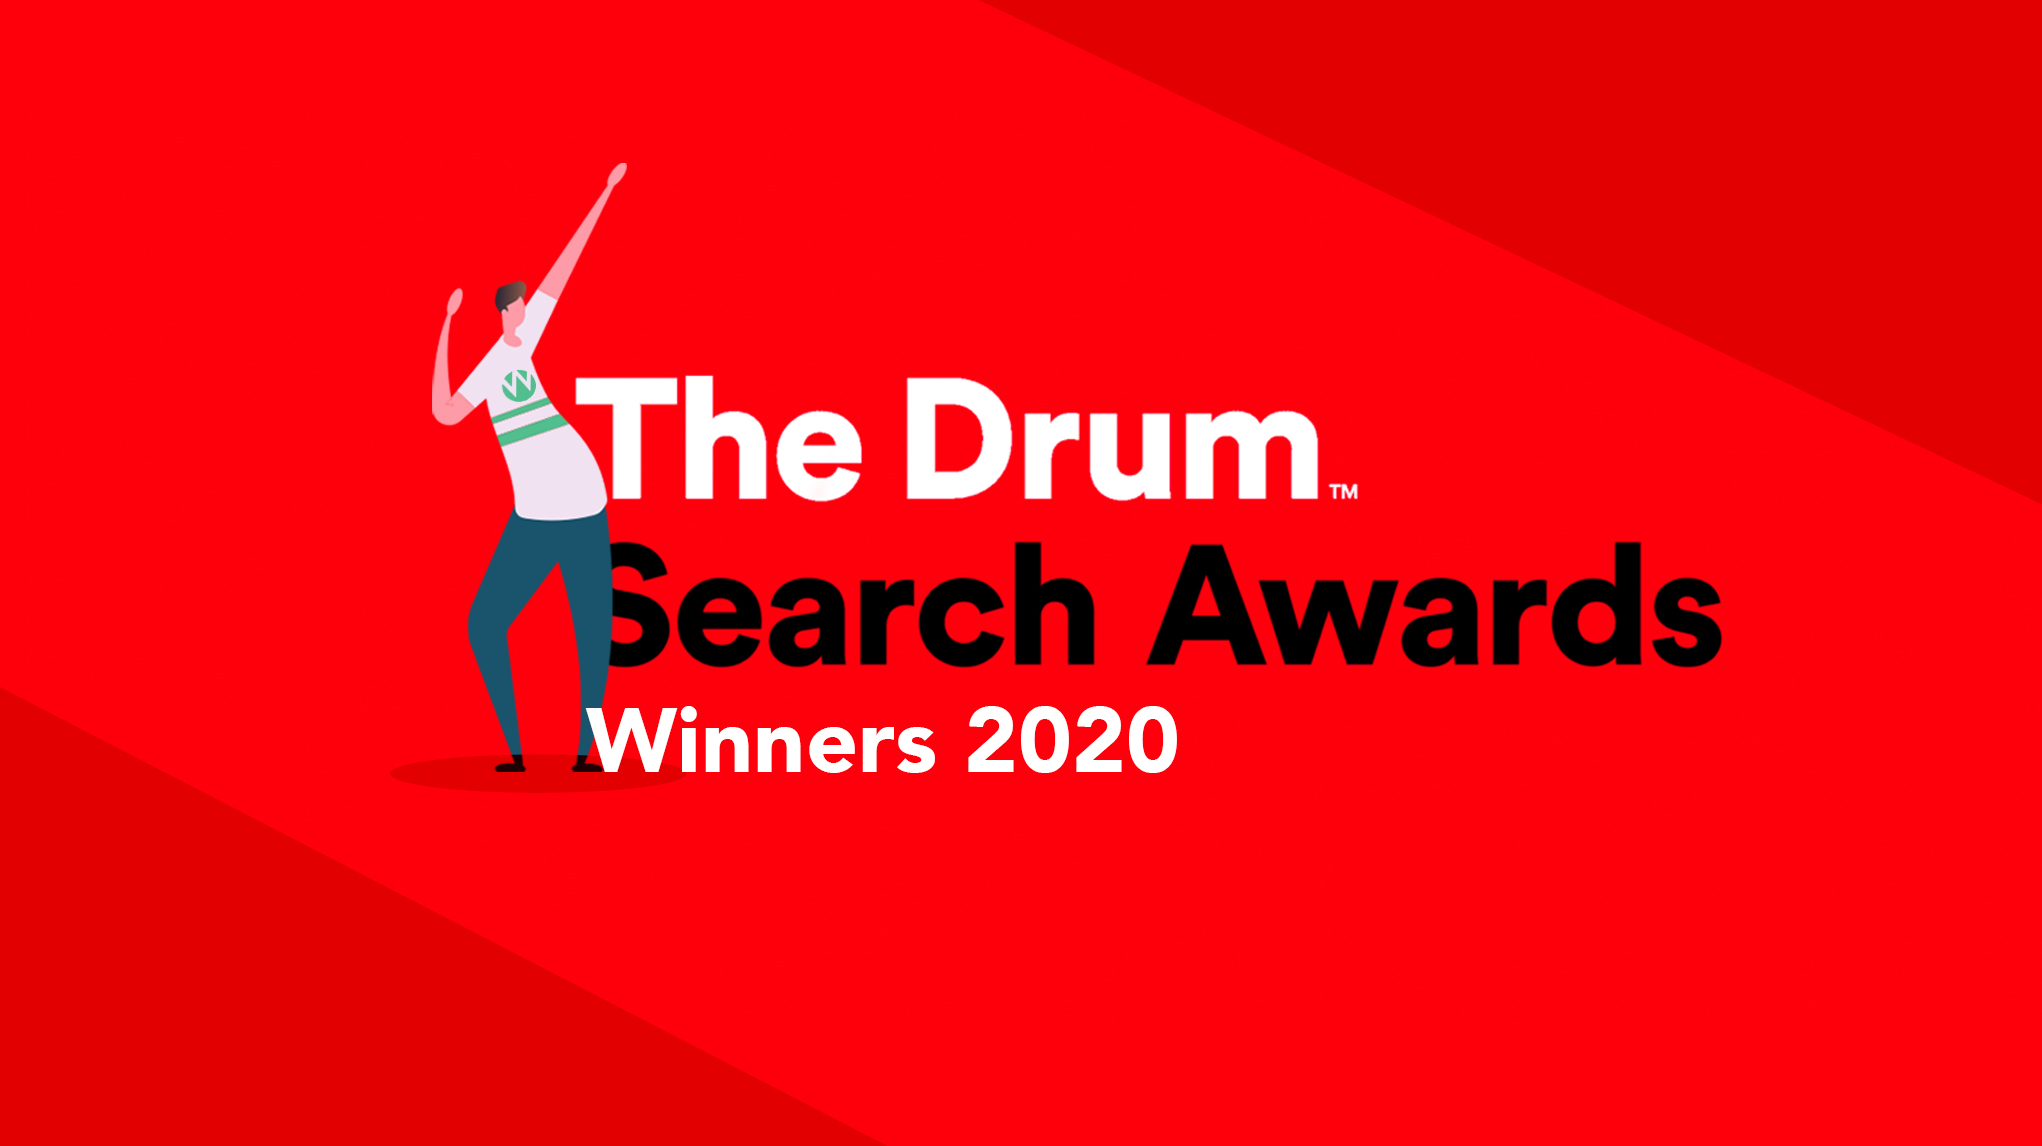 Wolfgang Win Trio of Awards at The Drum Search Awards in Virtual Ceremony